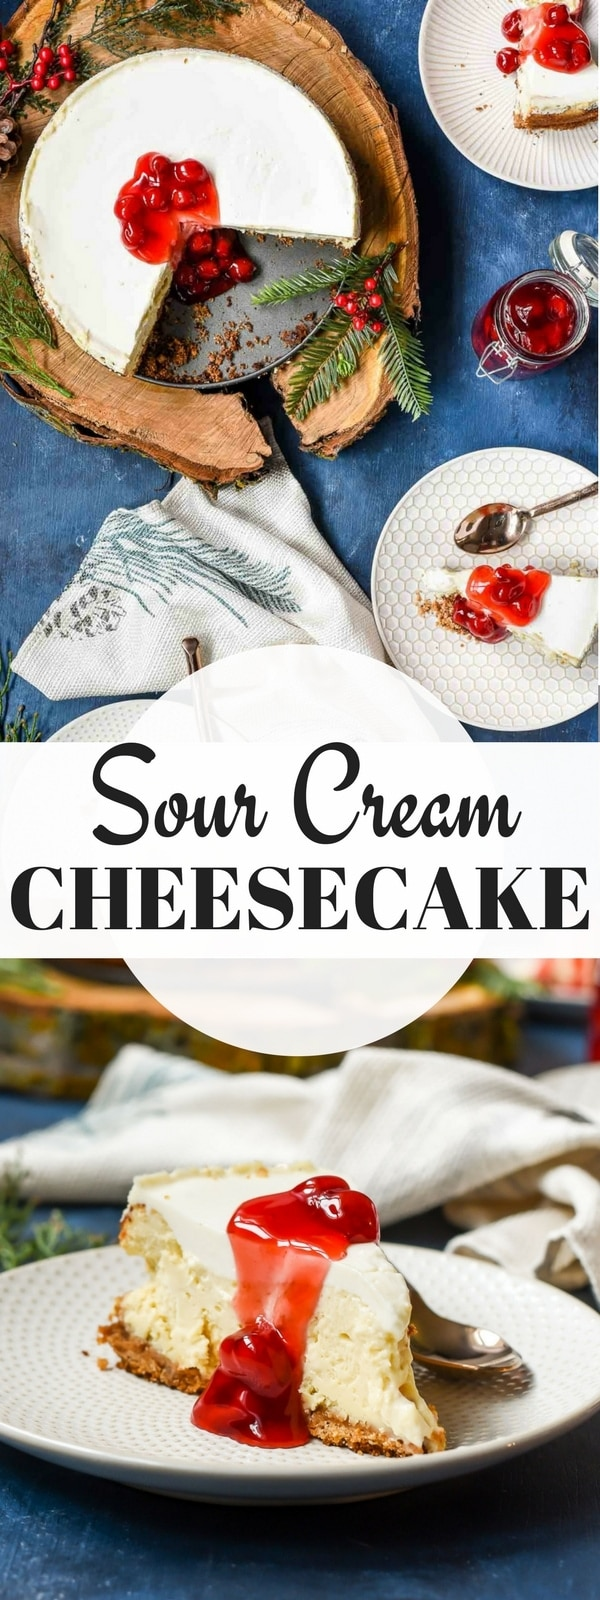 This Sour Cream Cheesecake is an unbelievably smooth, creamy, fluffy cheesecake topped with a layer of tangy sweet sour cream. Absolutely the best cheesecake around!